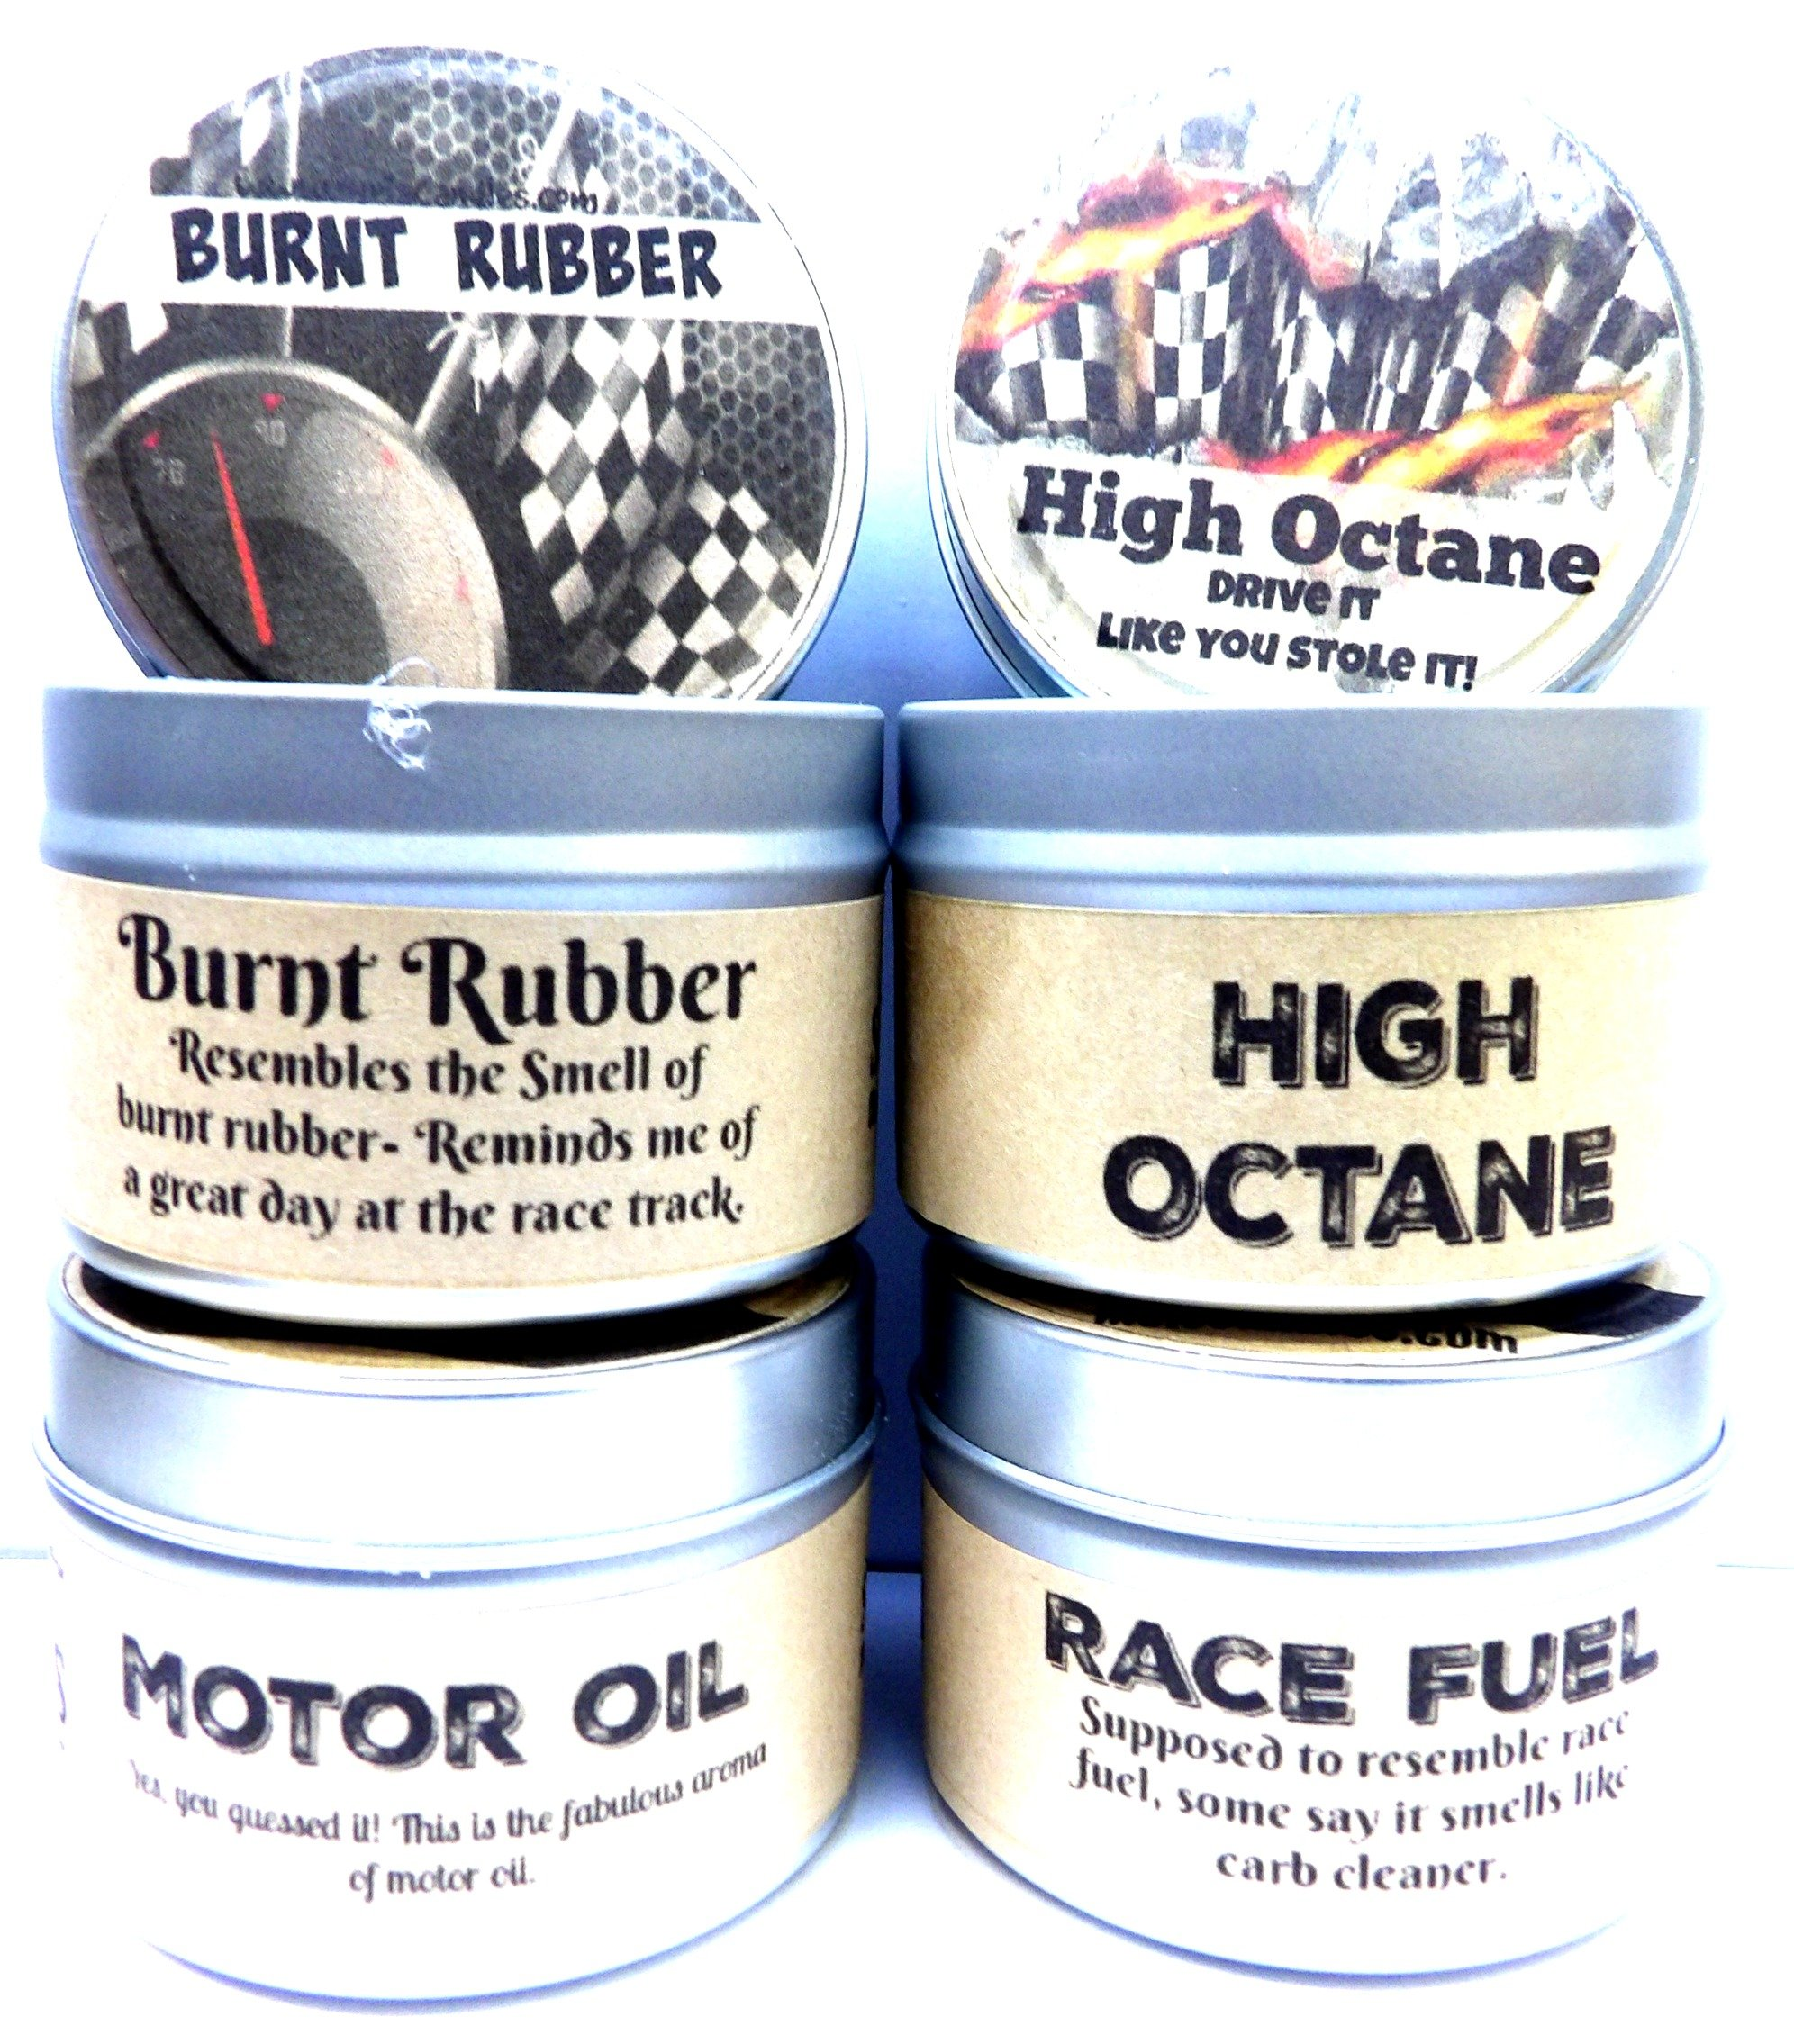 Combo Set of 4 - High Octane, Race Fuel, Motor Oil & Burnt Rubber 4 Oz All Natural Soy Candle Tins by Mels Candles & More (Image #1)